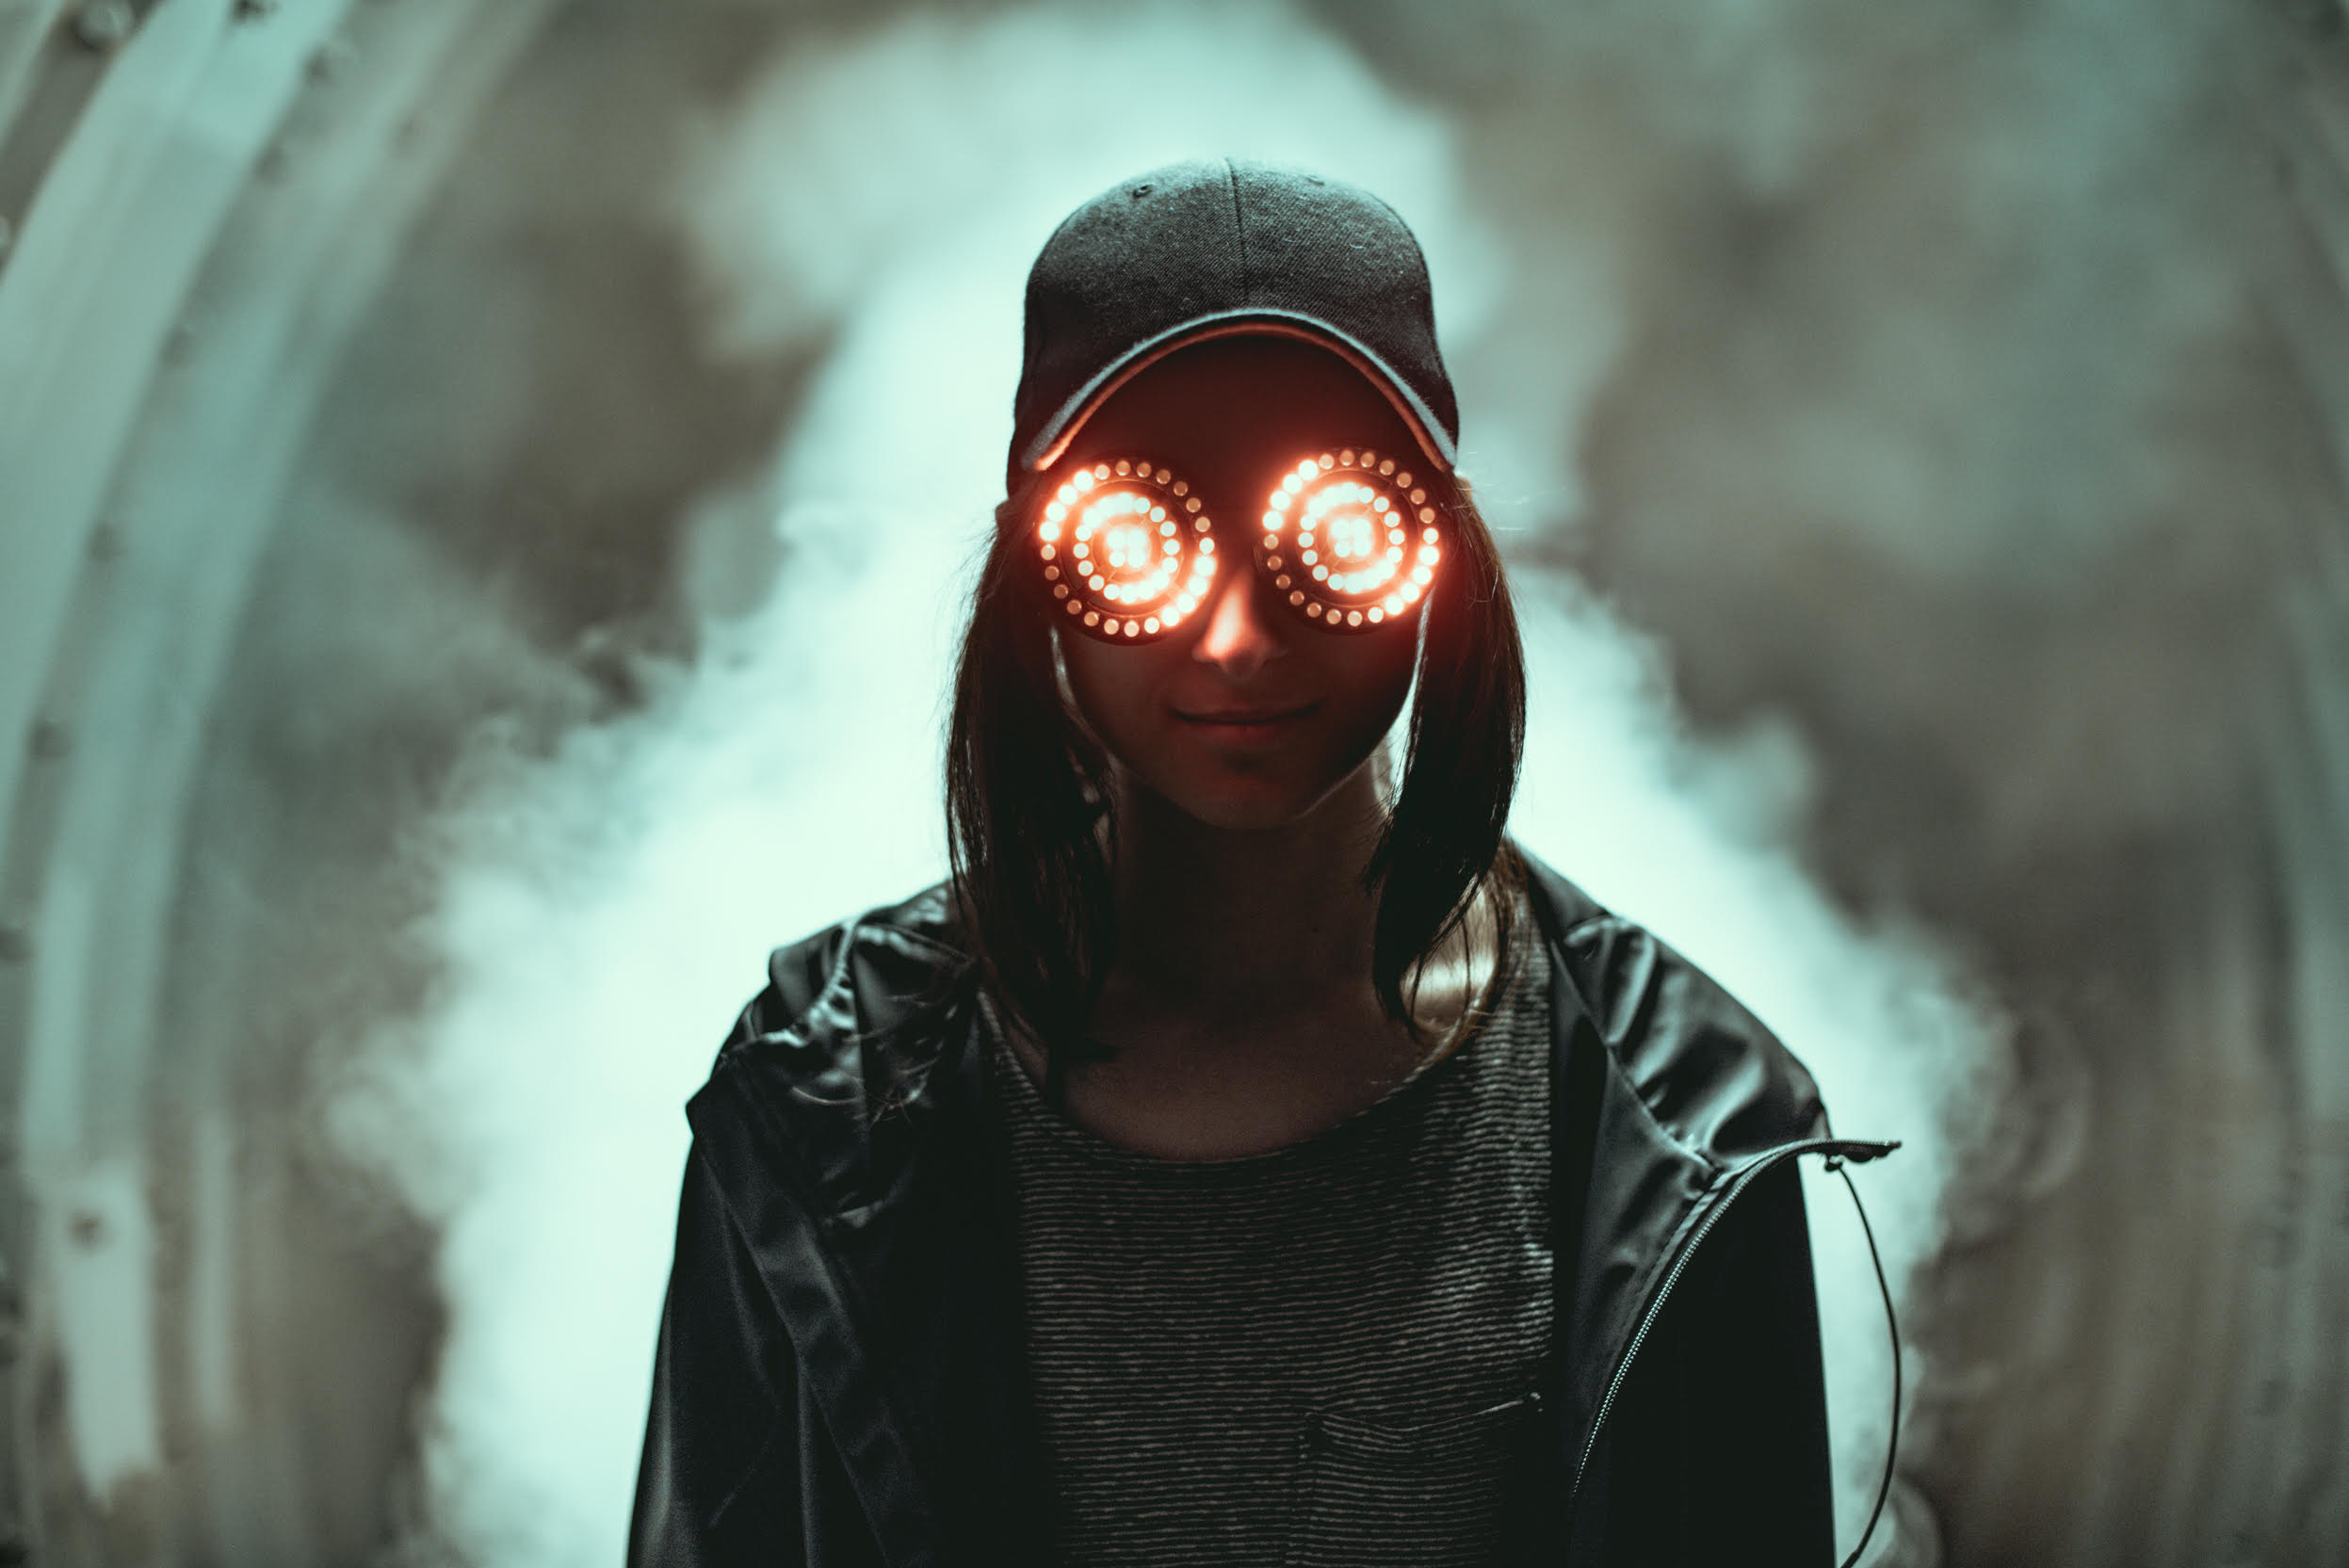 REZZ reveals 'Mass Manipulation' comic book in new 'Premonition' videoRezz